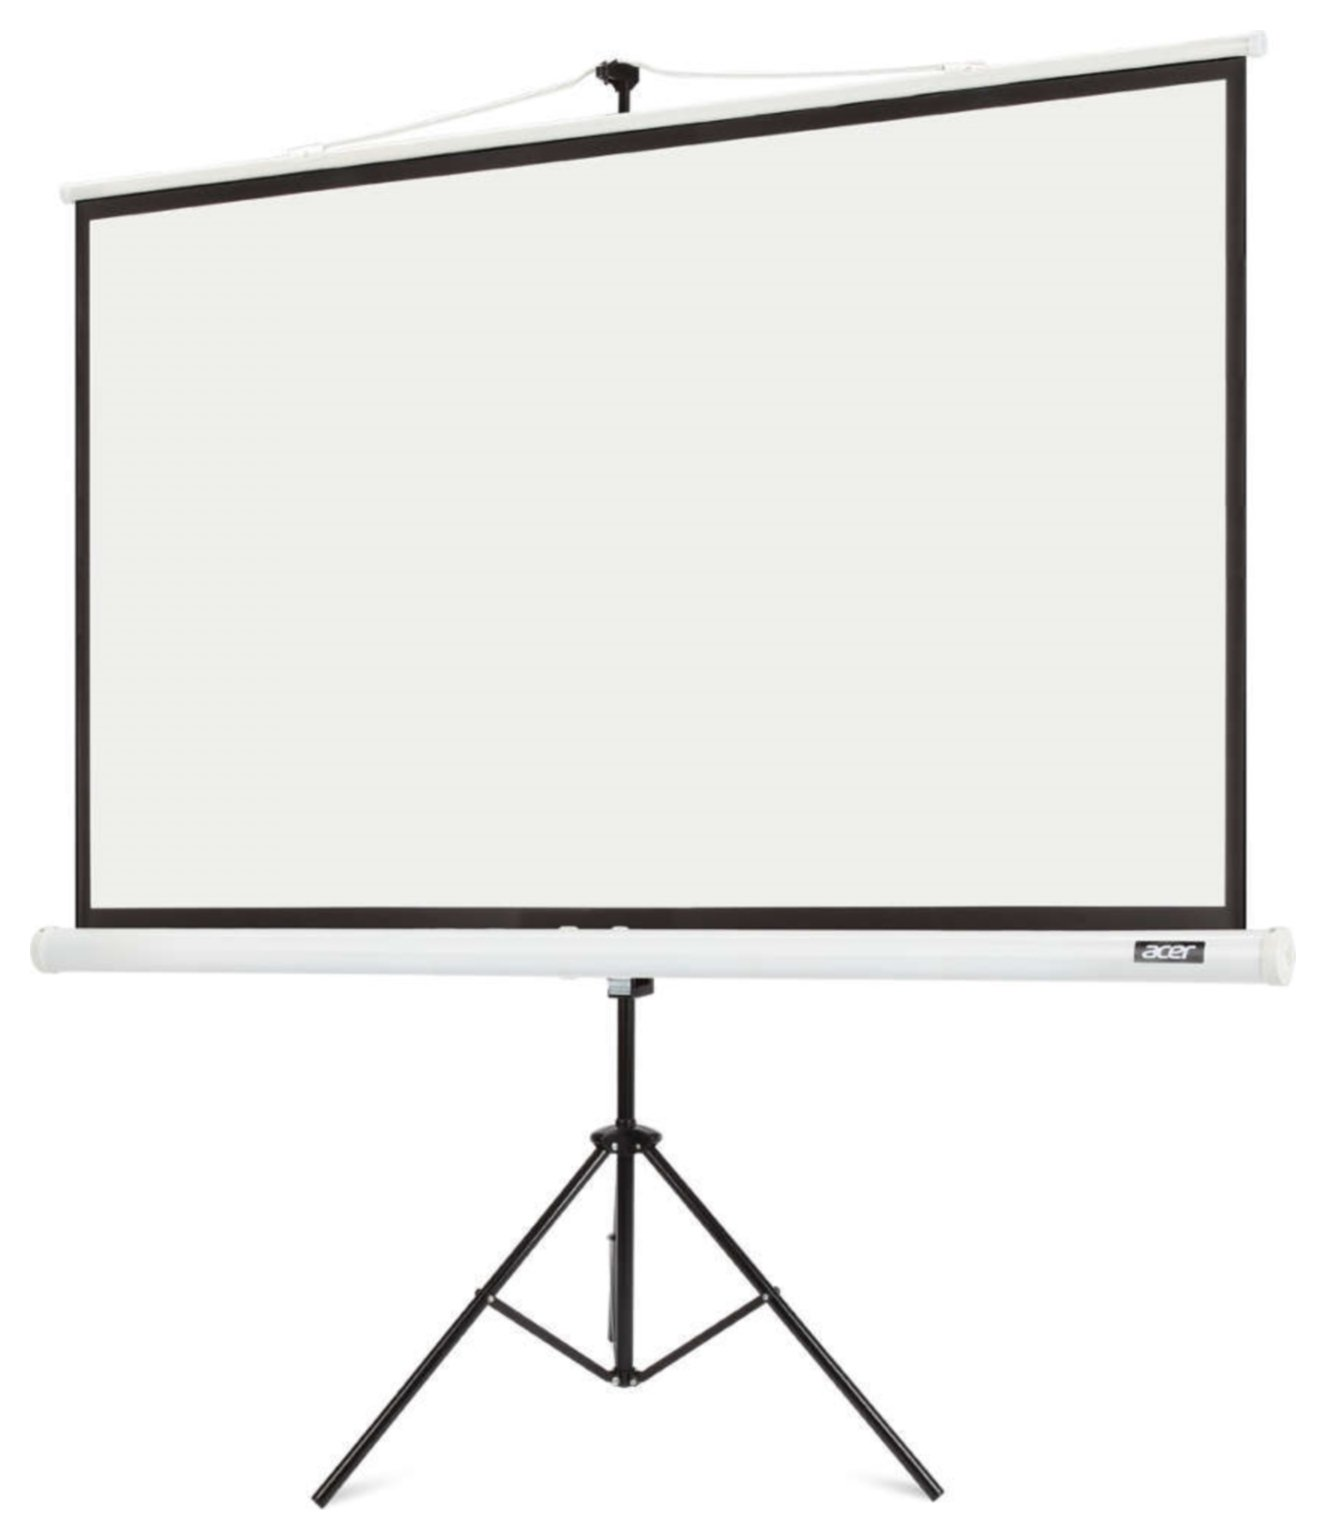 Image of Acer - 825 Tripod - Projection Screen